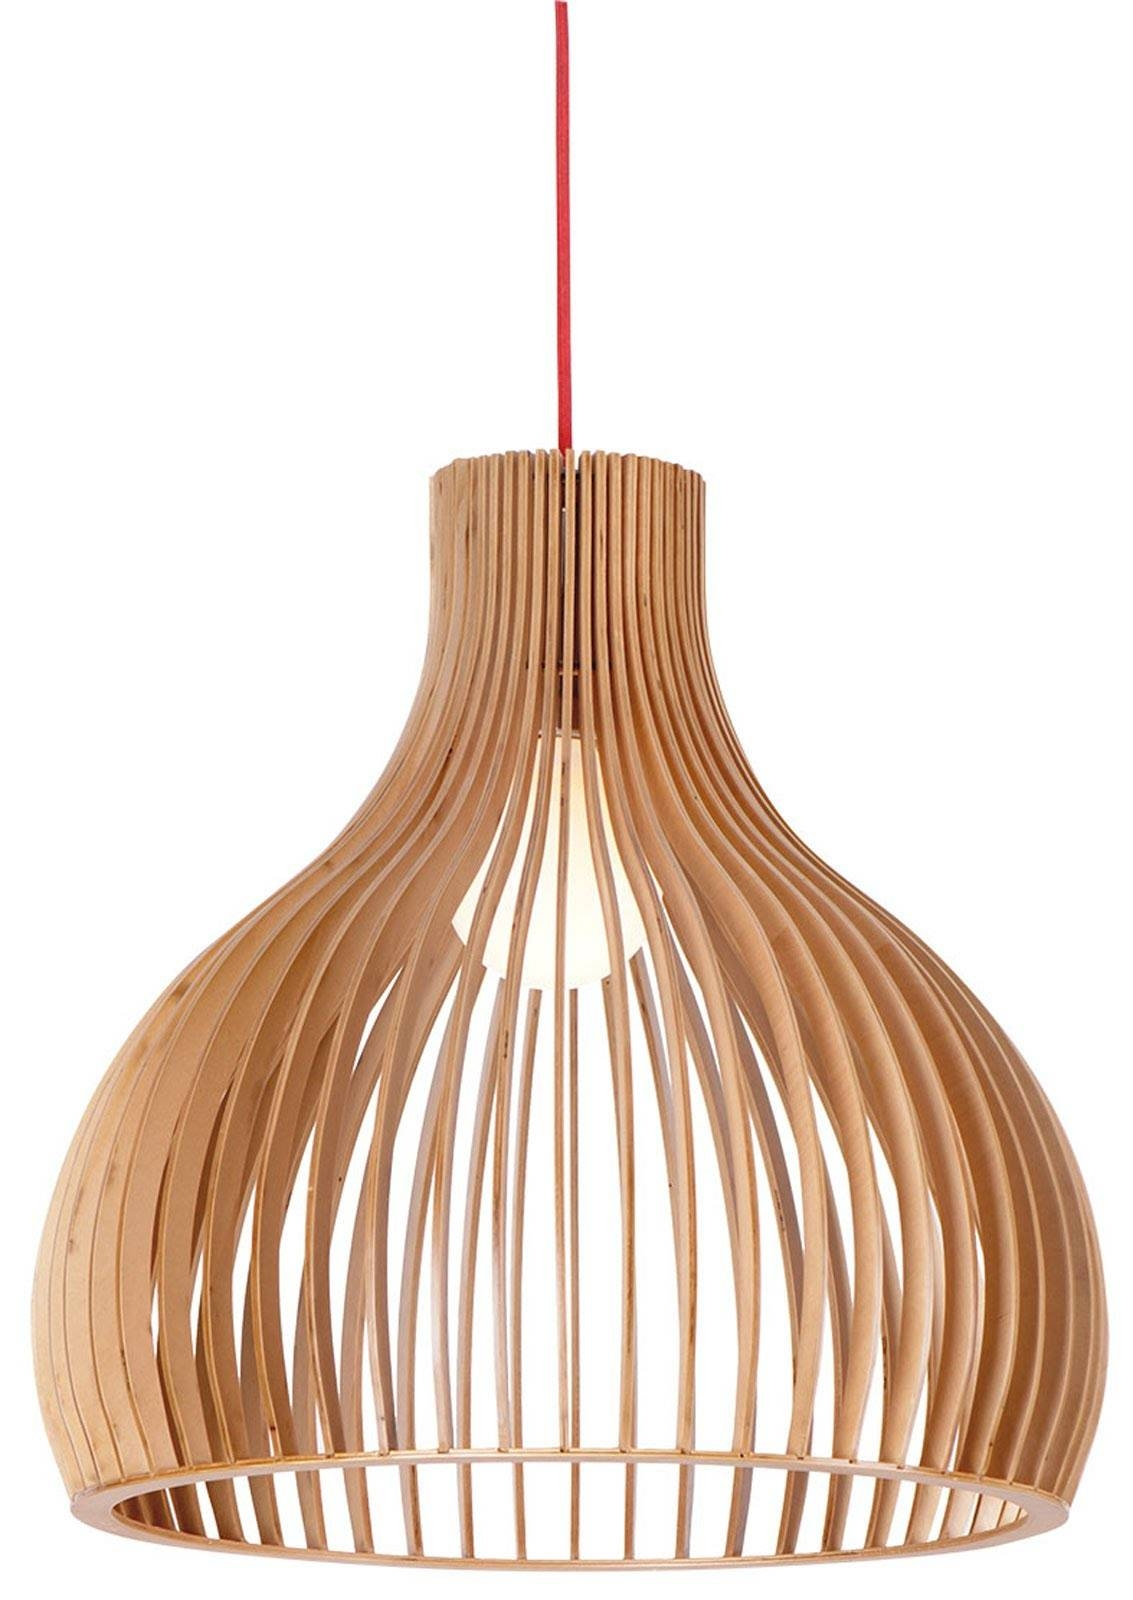 Buy Wood Pendant Light In Melbourne [malmo] – Youtube Throughout Wooden Pendant Lighting (View 8 of 15)